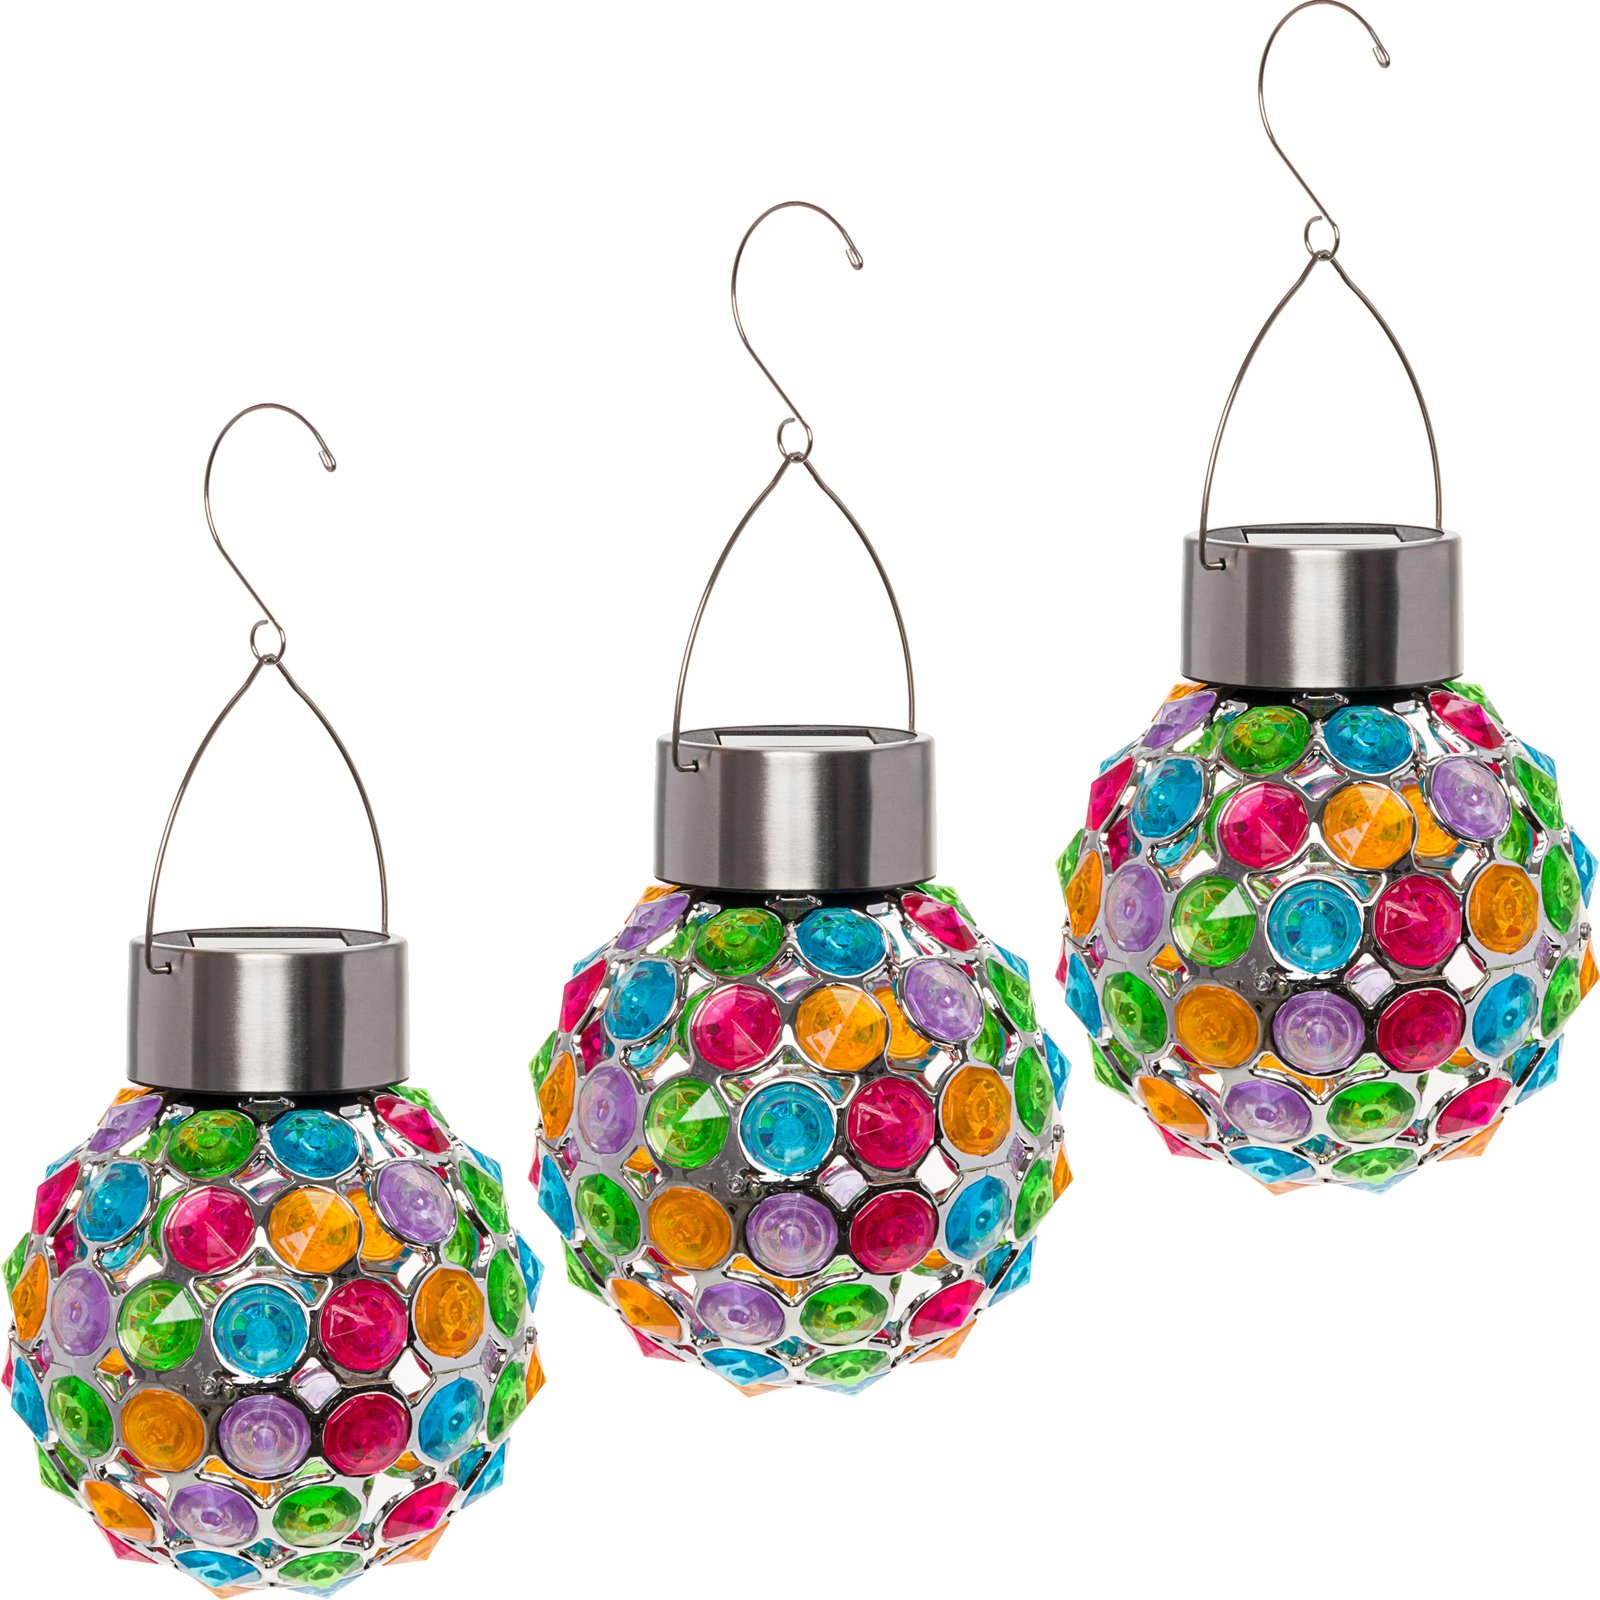 GreenLighting 3 Pack Outdoor Solar Hanging Lights - Decorative Ball Lantern For Patio, Garden By (Multi-color)